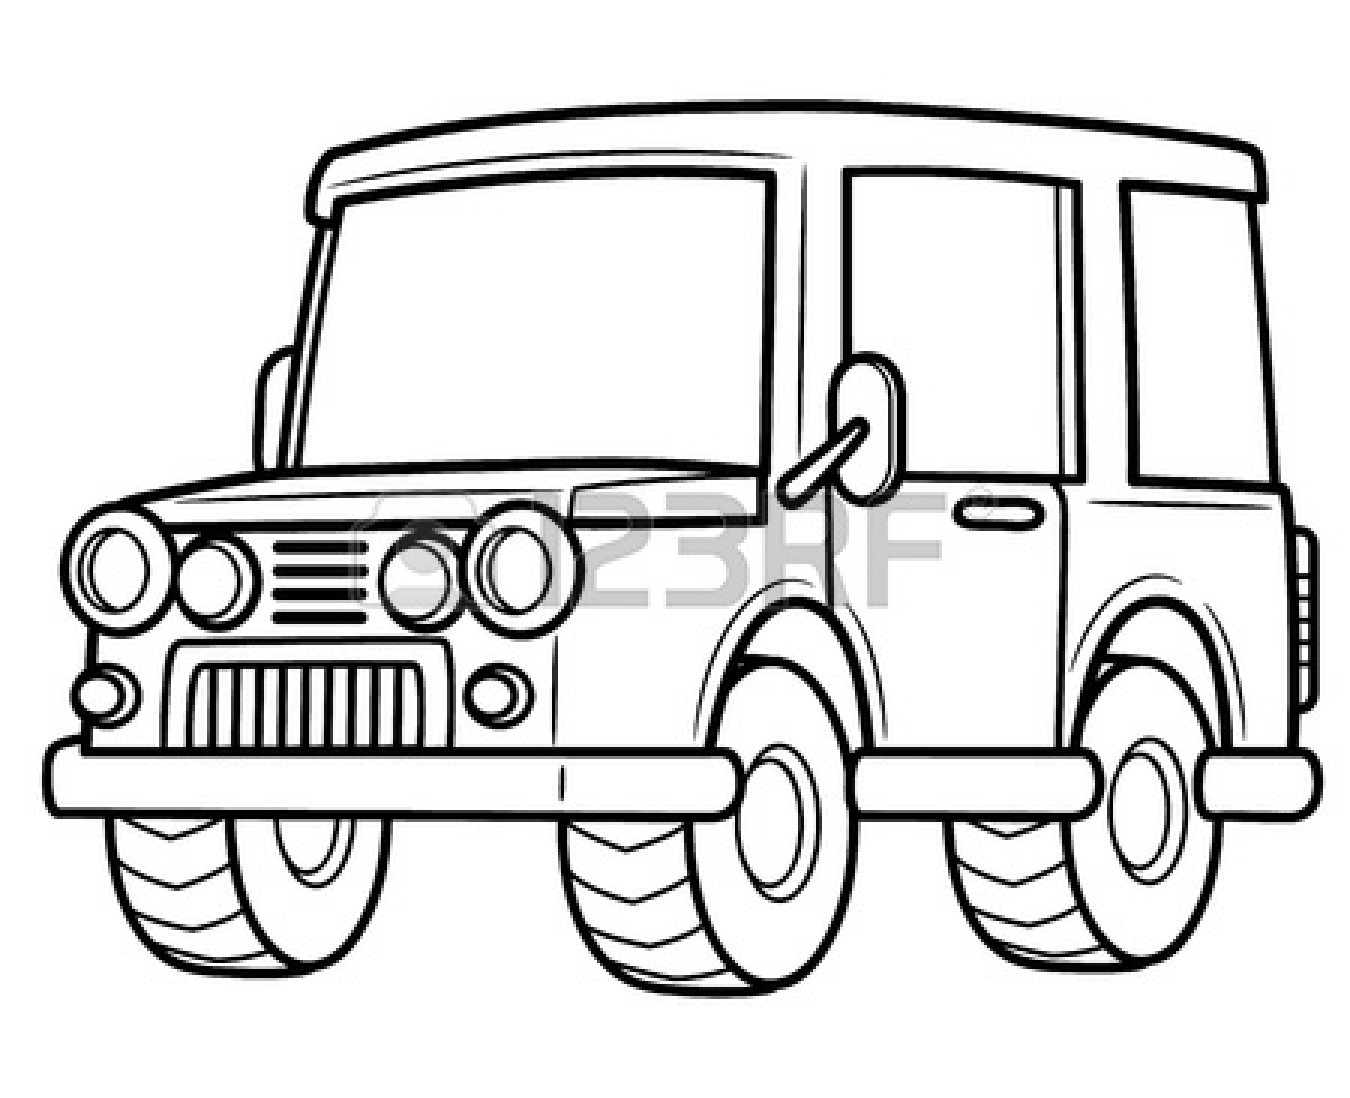 1350x1098 Truck Black And White Clipart 2032837